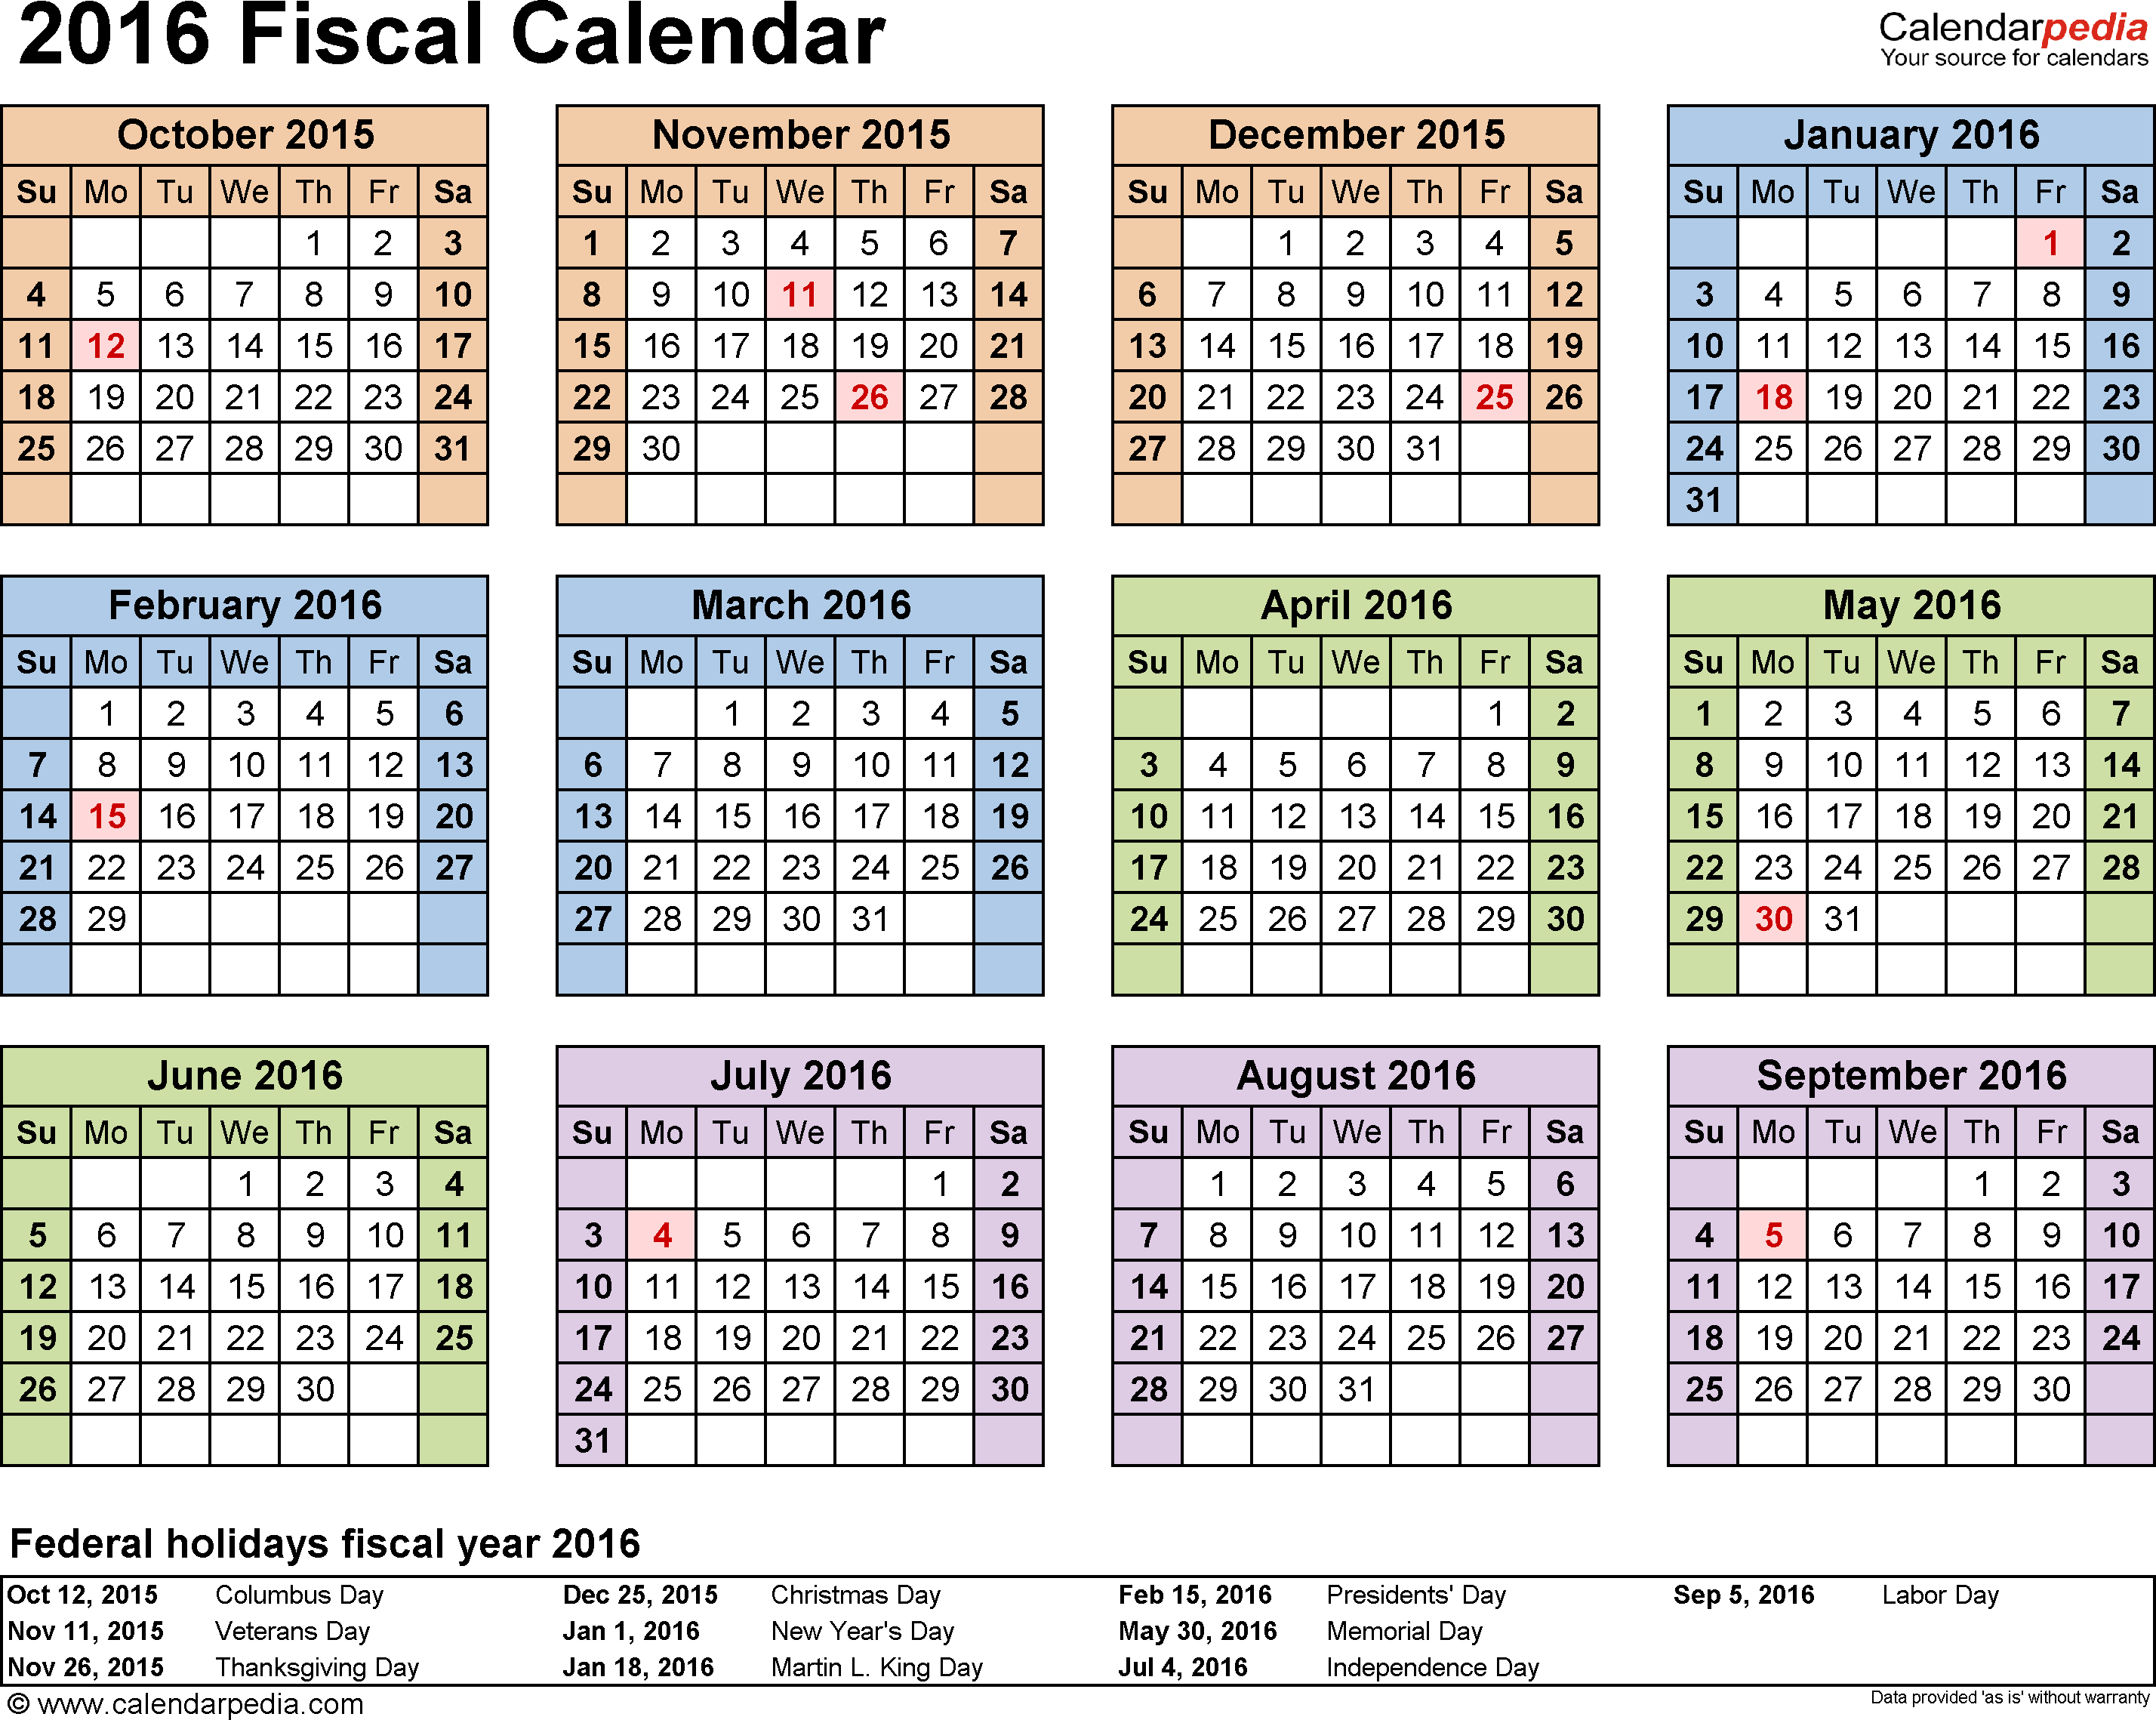 Template 4: Fiscal year calendar 2016 for PDF, landscape orientation, year at a glance, 1 page